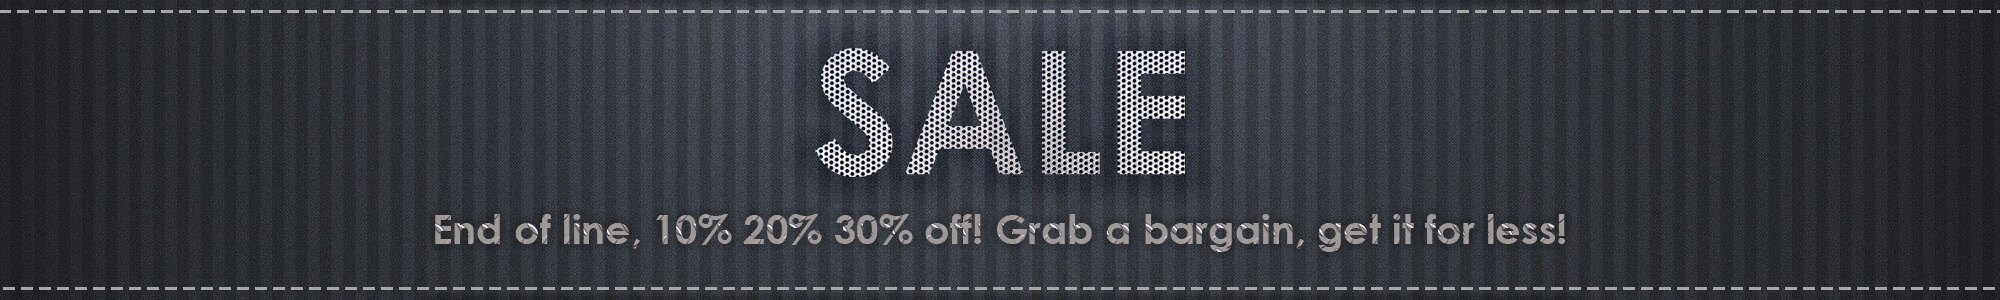 Special Offers Sale Items